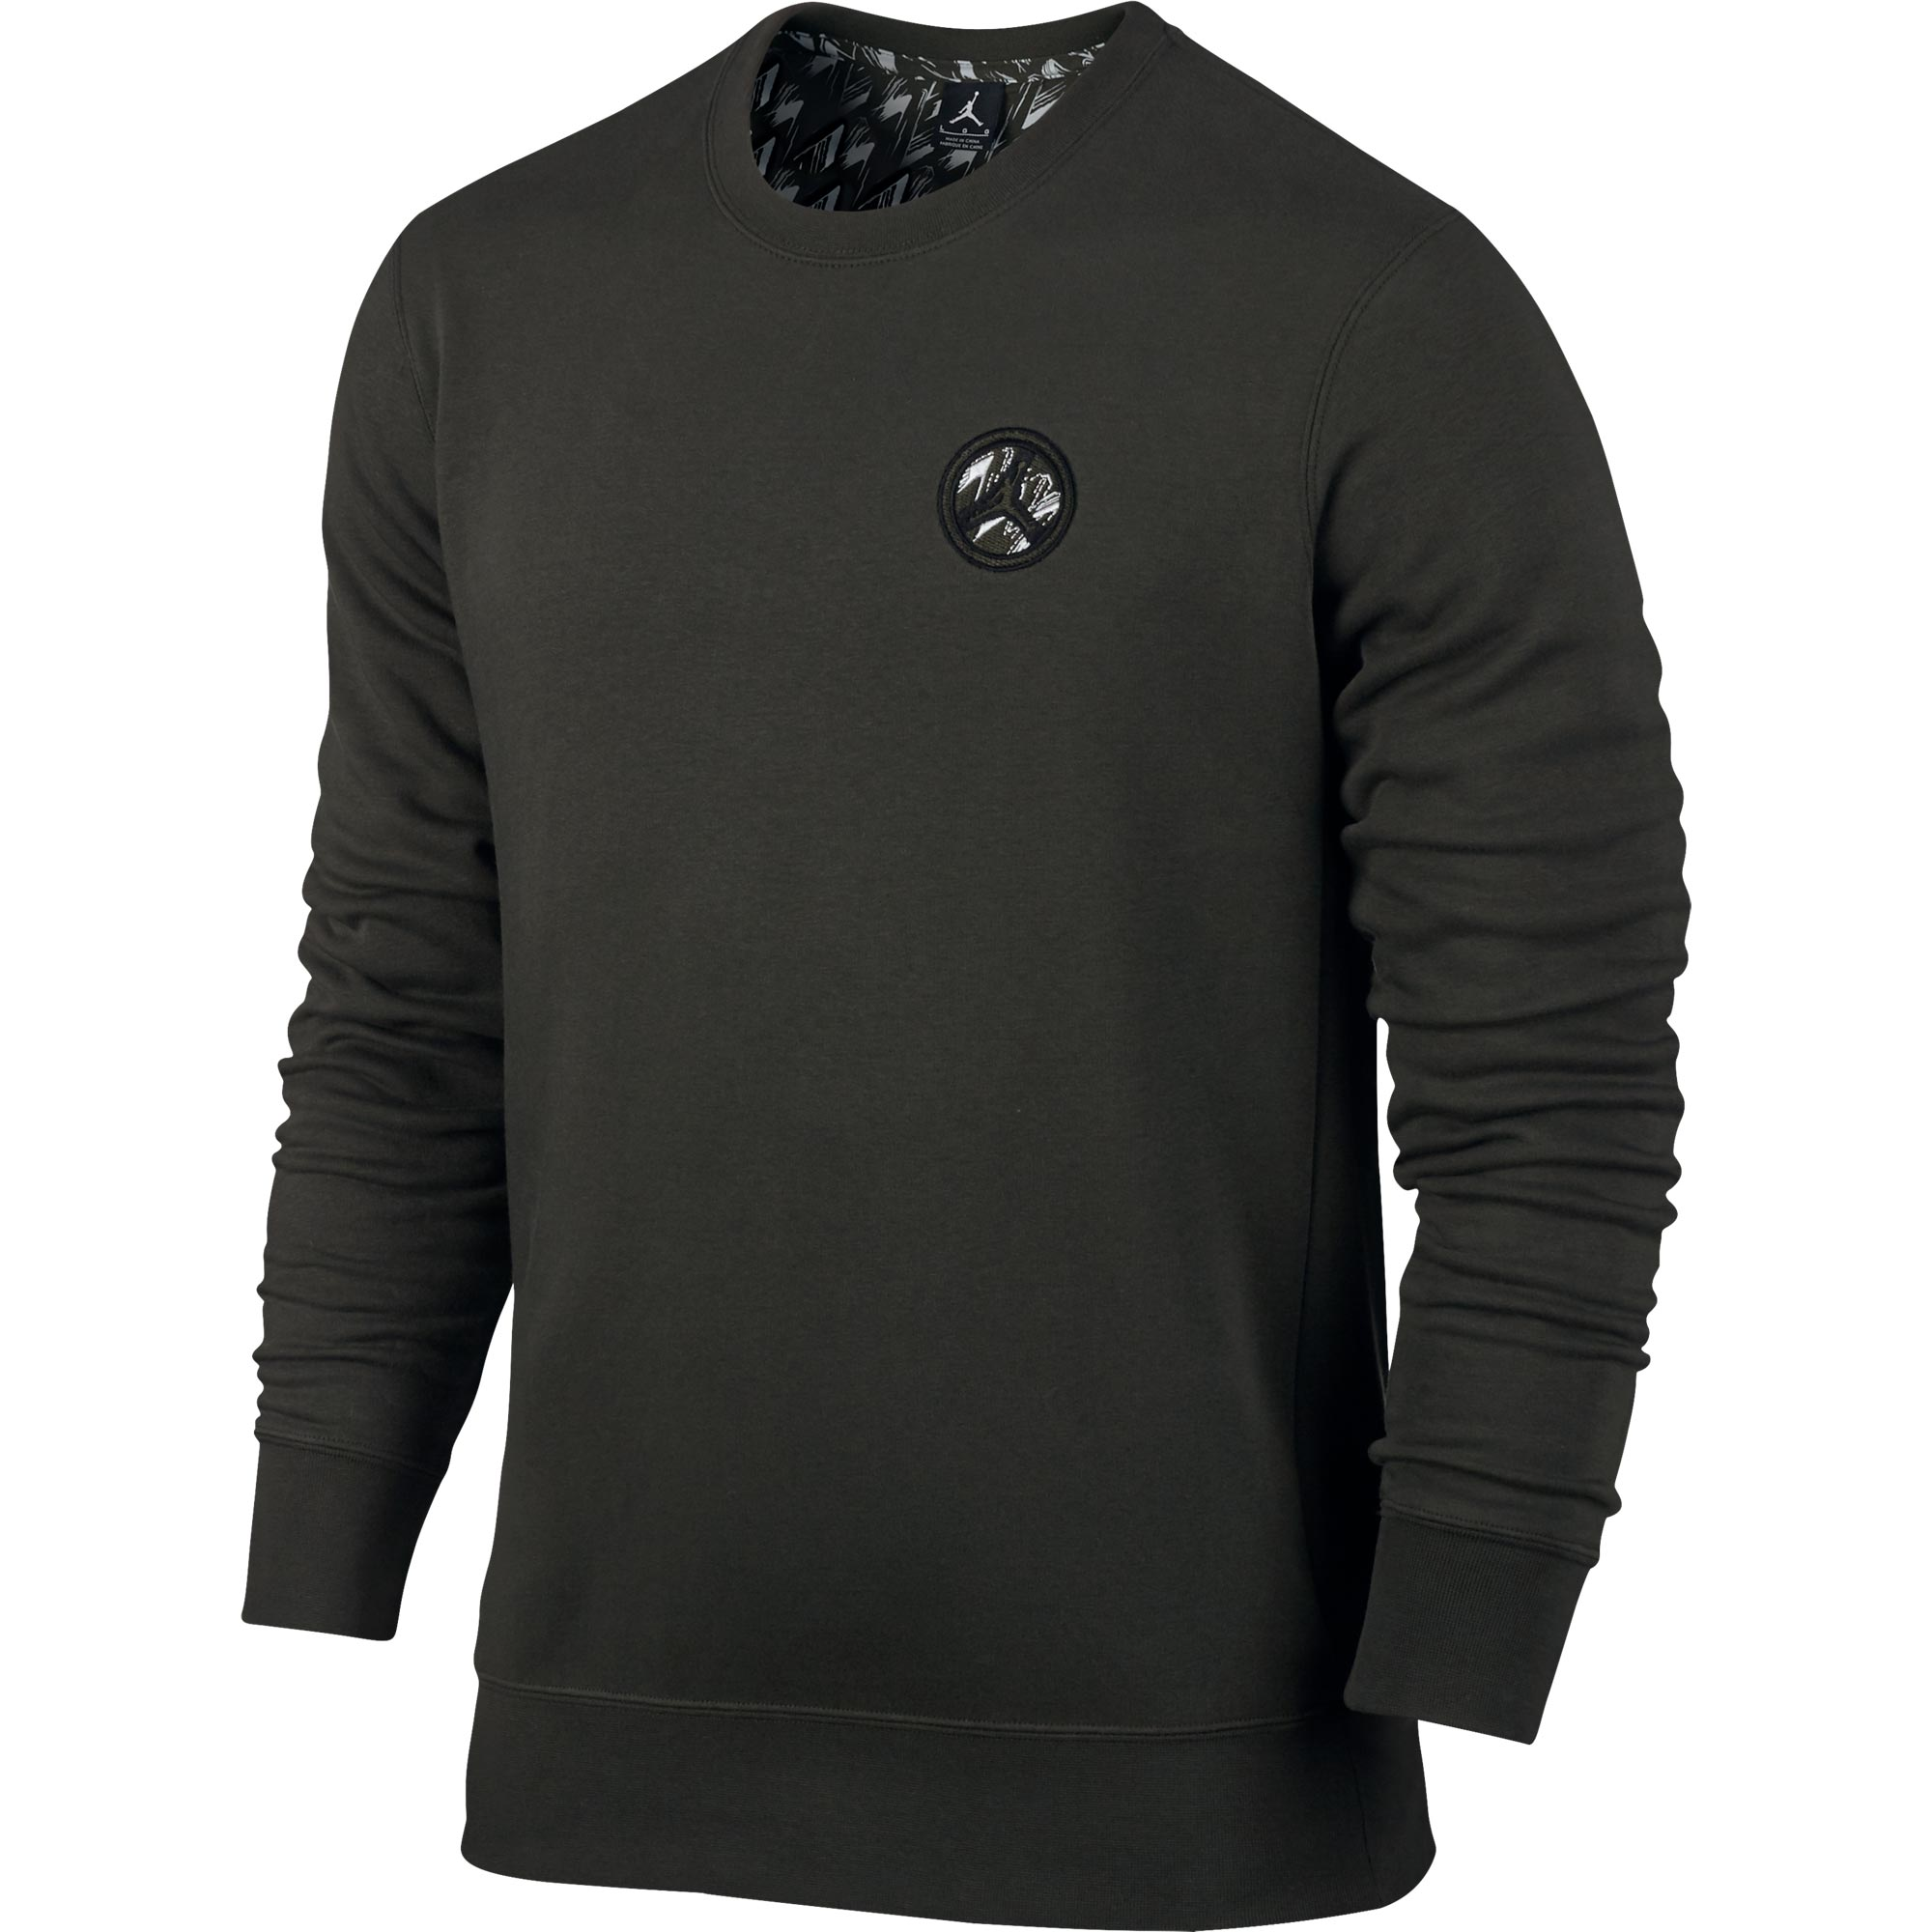 Jordan AJ 8 Fleece Crew Sweatshirt - Sequoia/Black - Mens